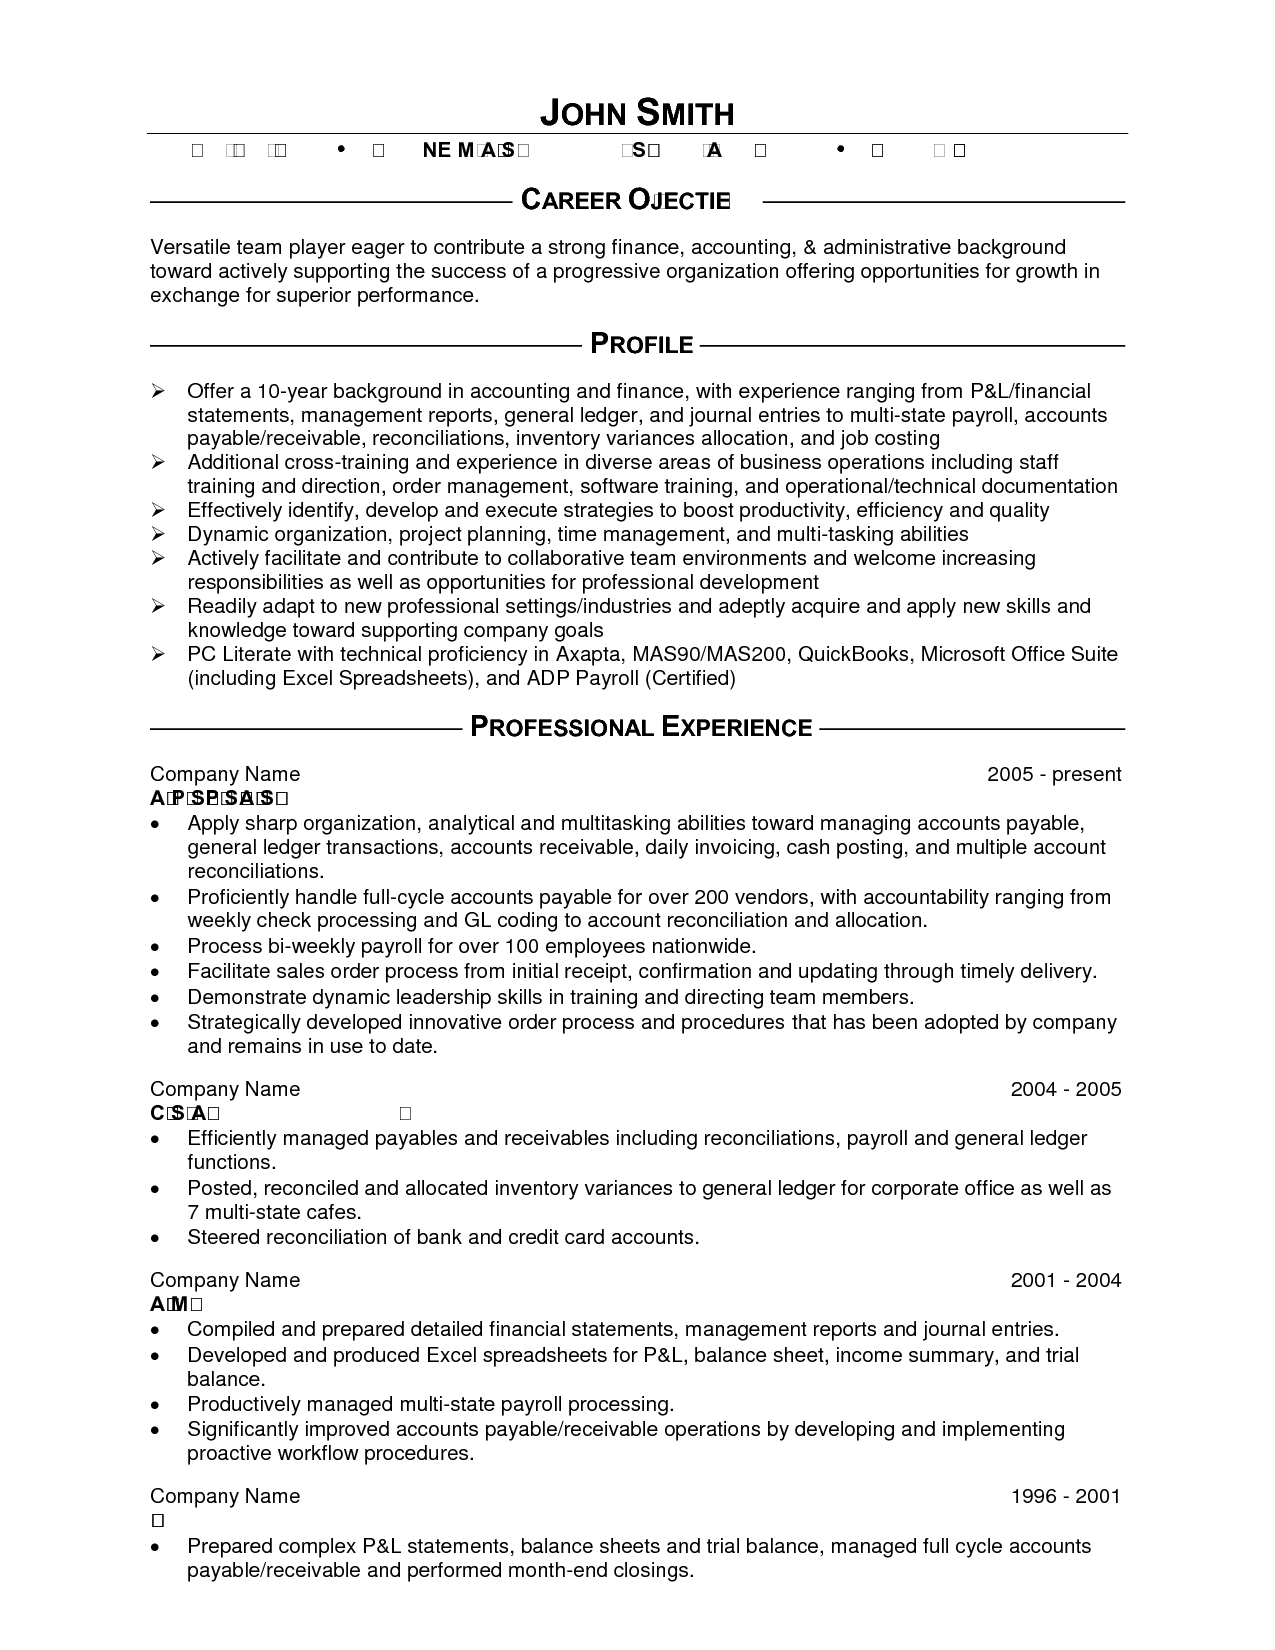 A Good Resume Objective Writing Accounting Resume Sample  Httpwwwresumecareer